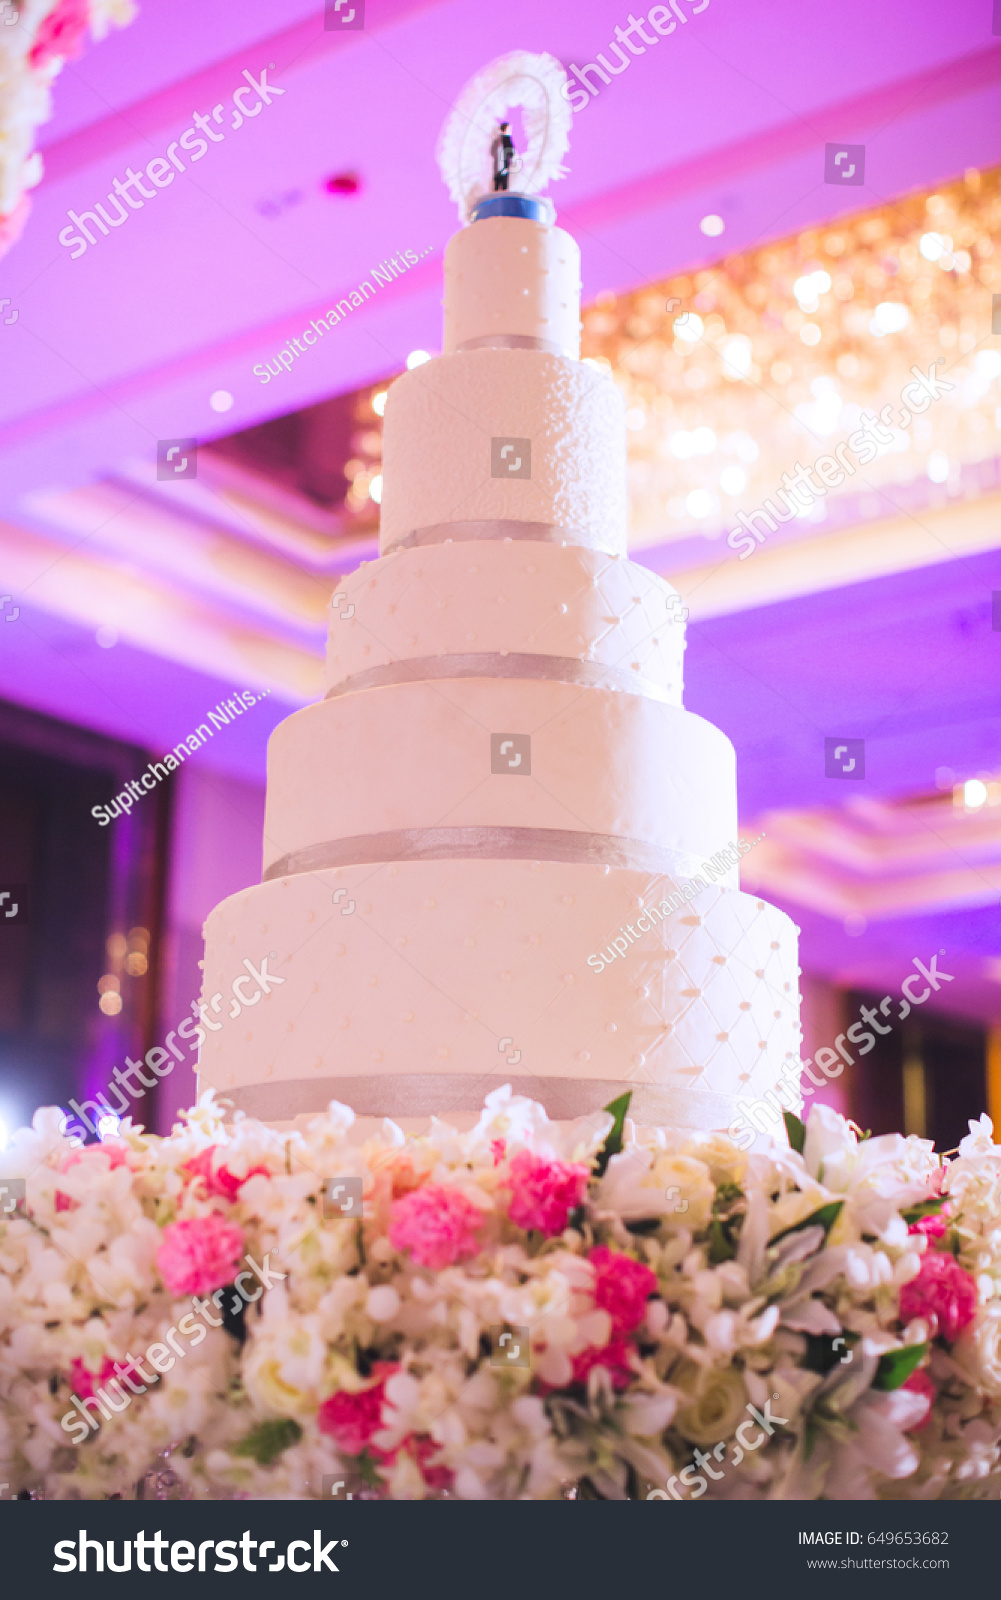 Wedding Cake For Day